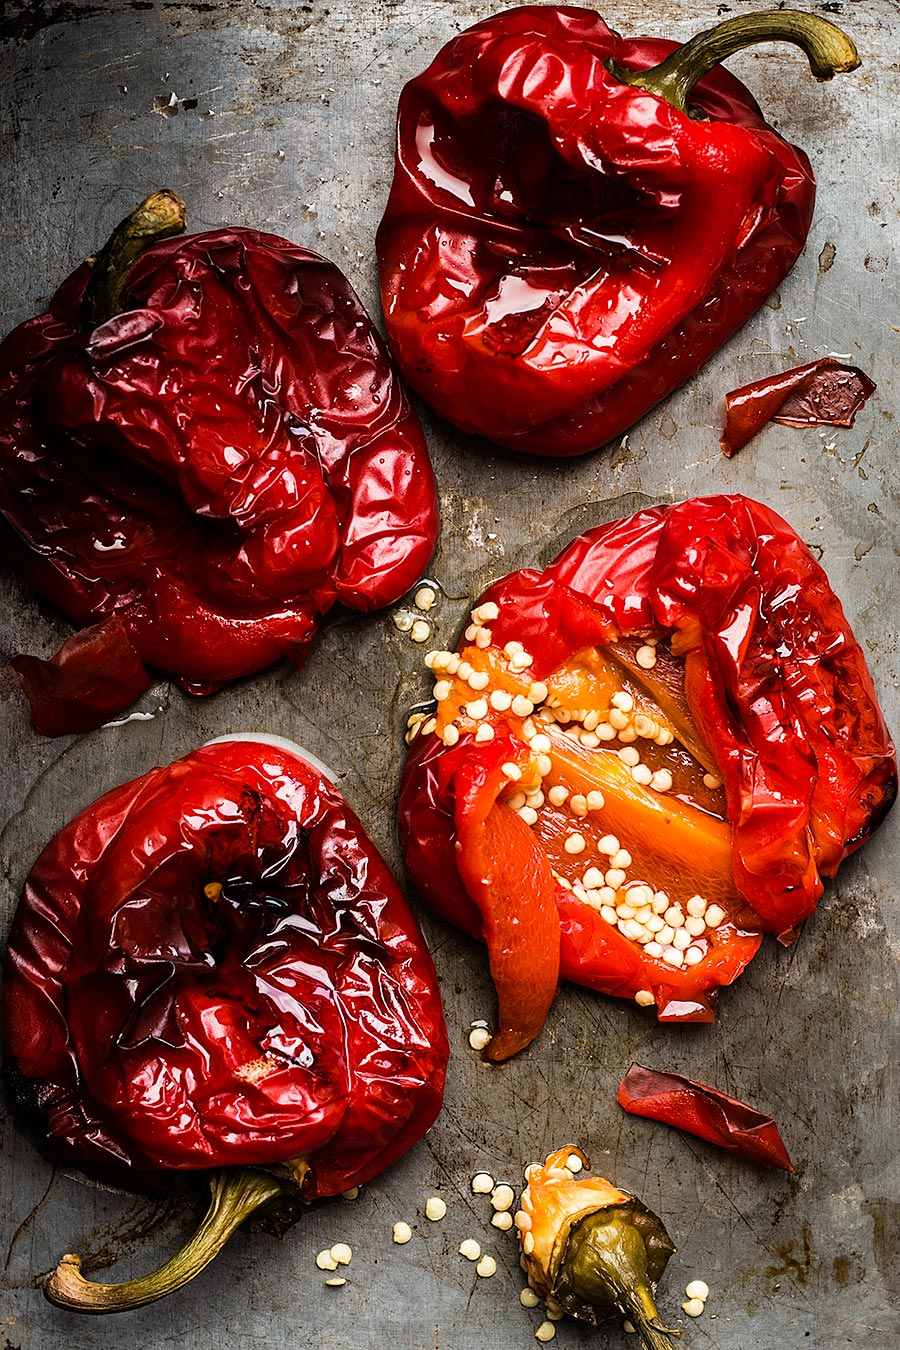 Roasted-pepper-by-Laura-Domingo.jpg